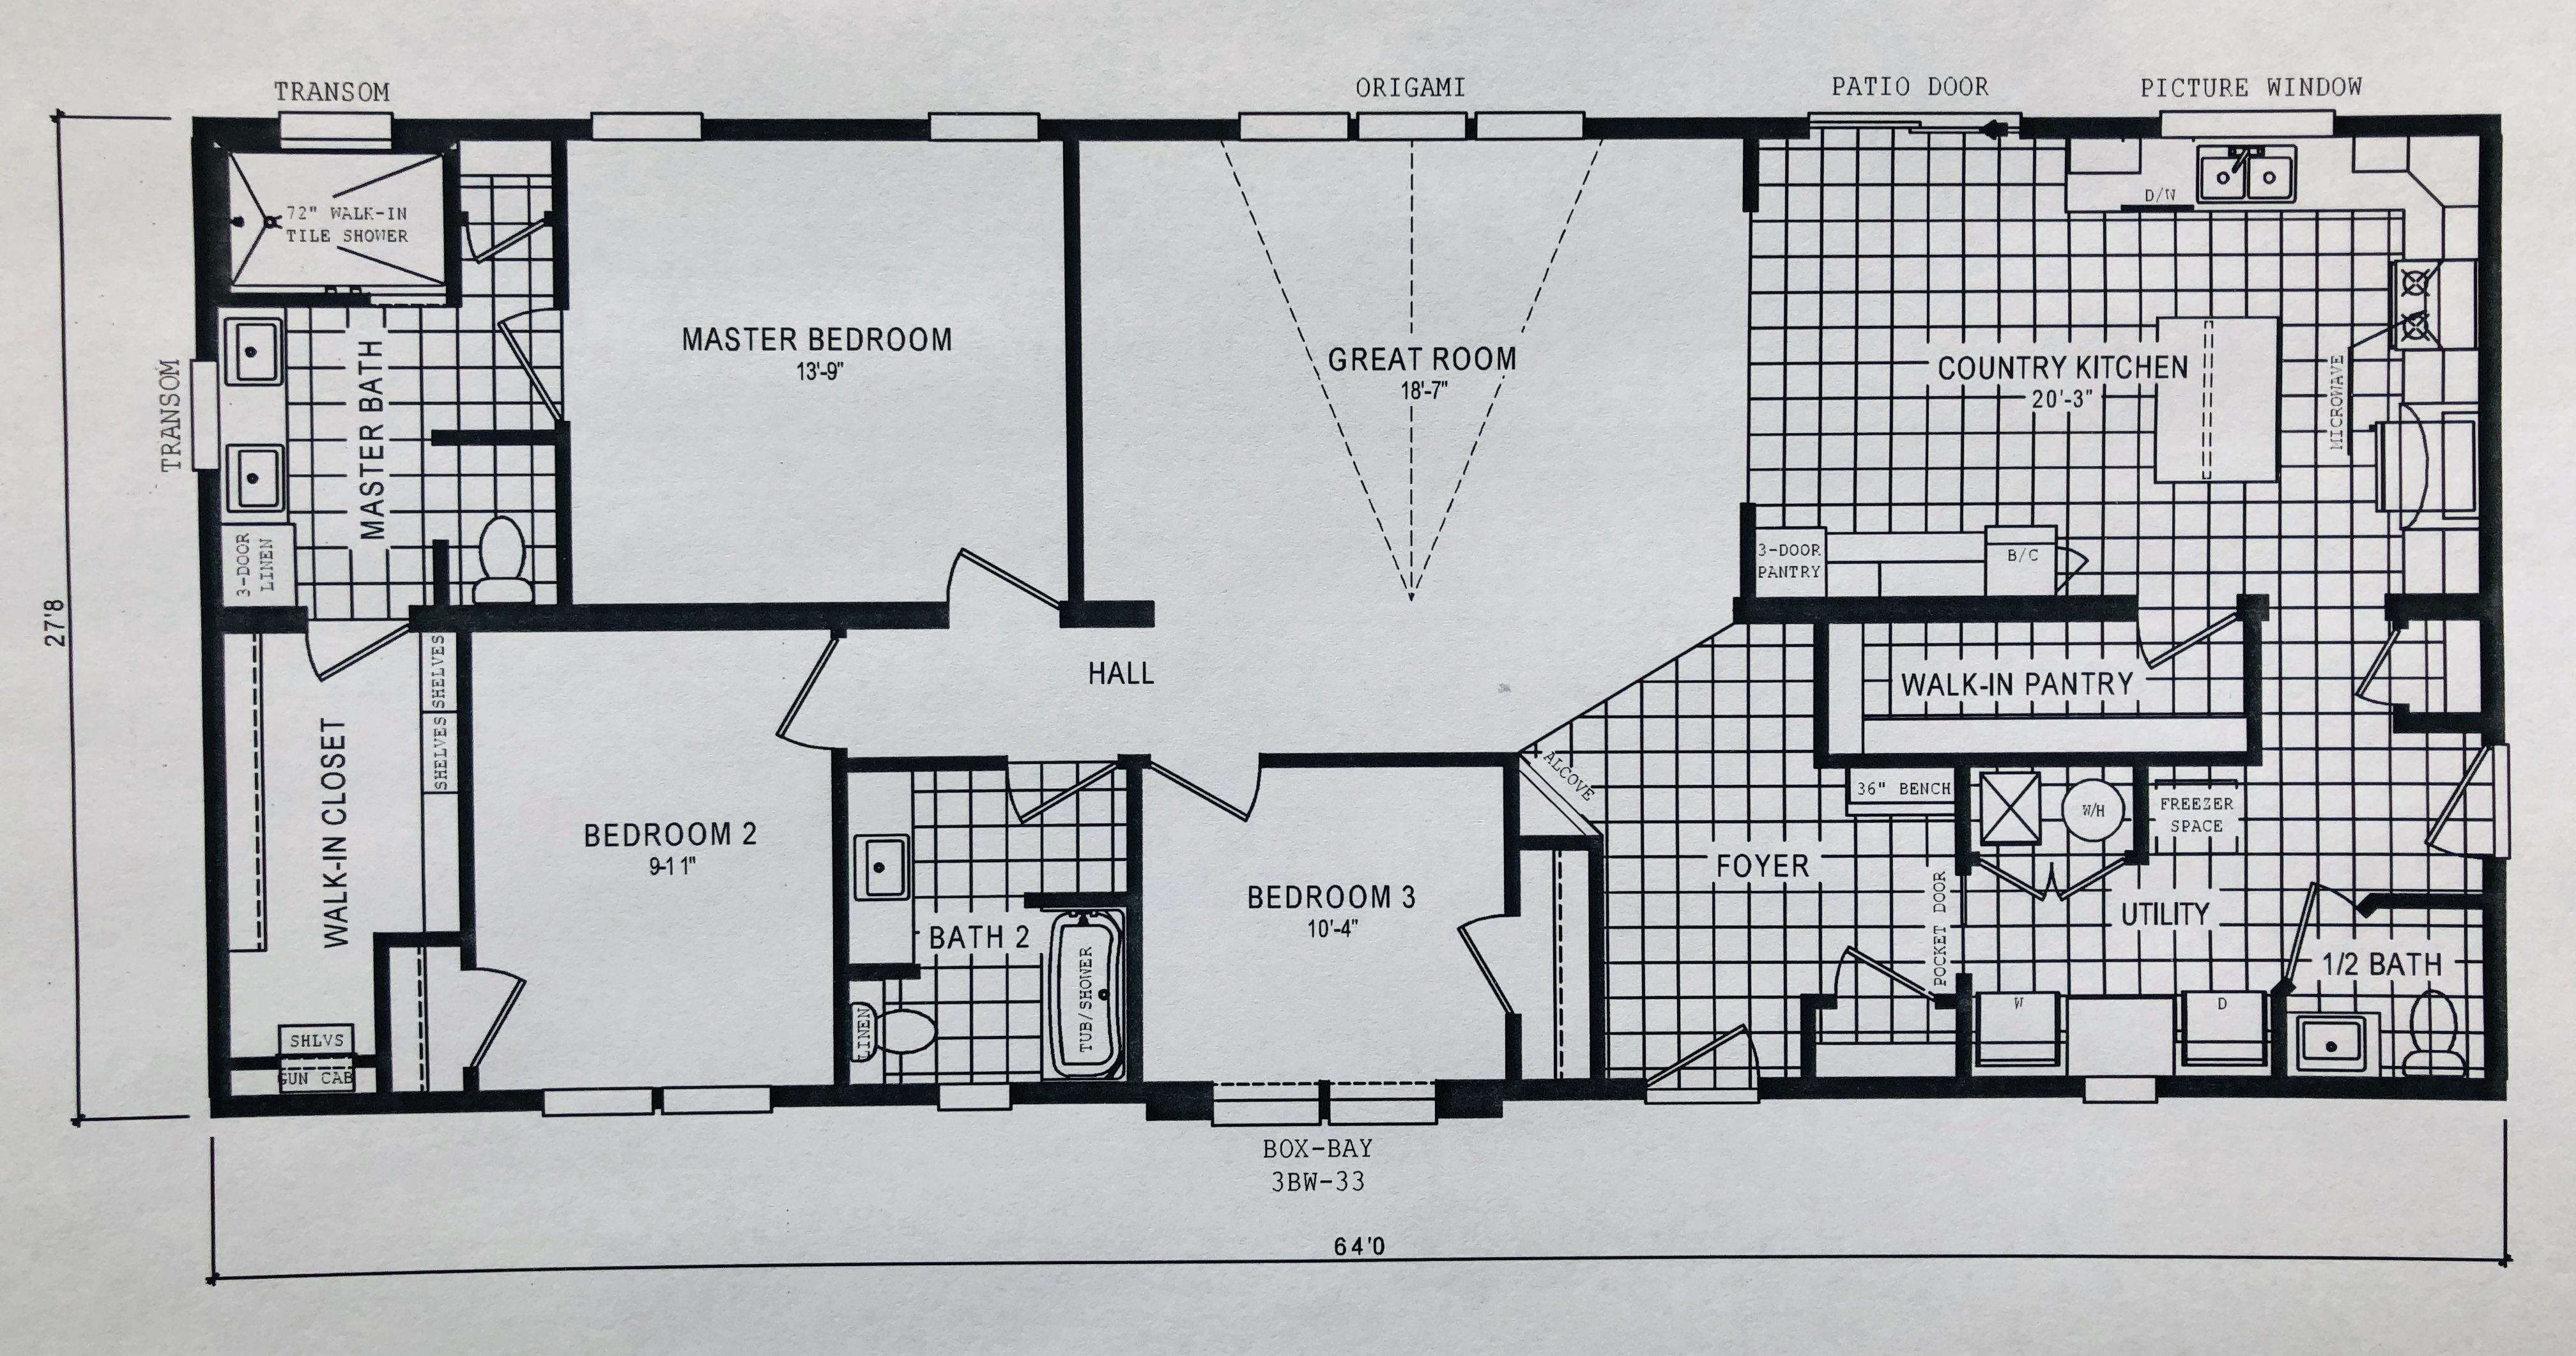 Homes Of Integrity Floor Plans: Minot – Schult Integrity 6428-12-1